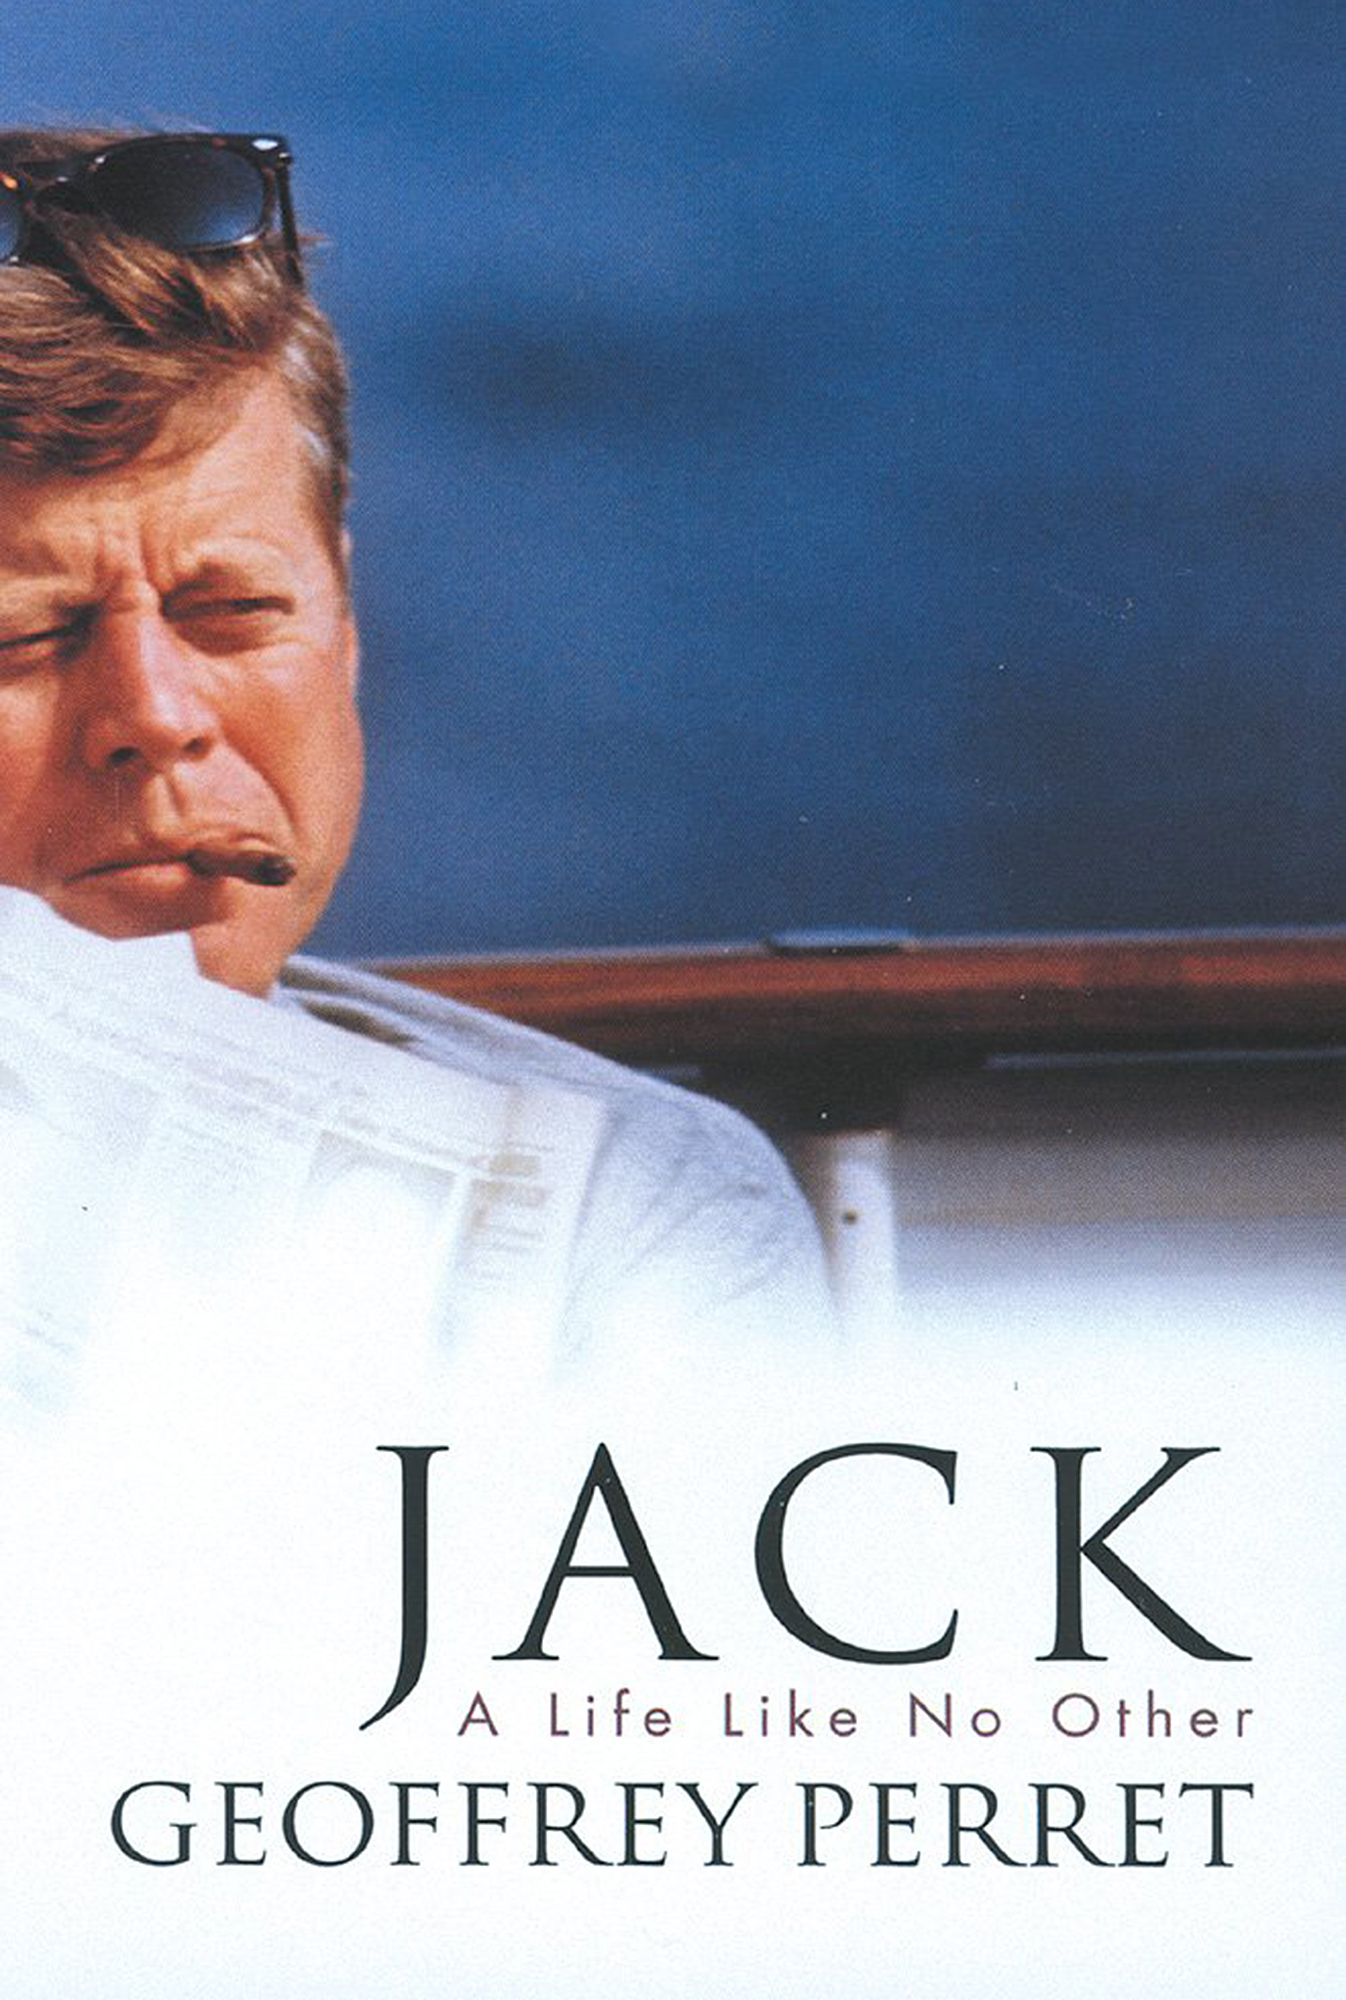 Jack: A Life Like No Other by Geoffrey Perret